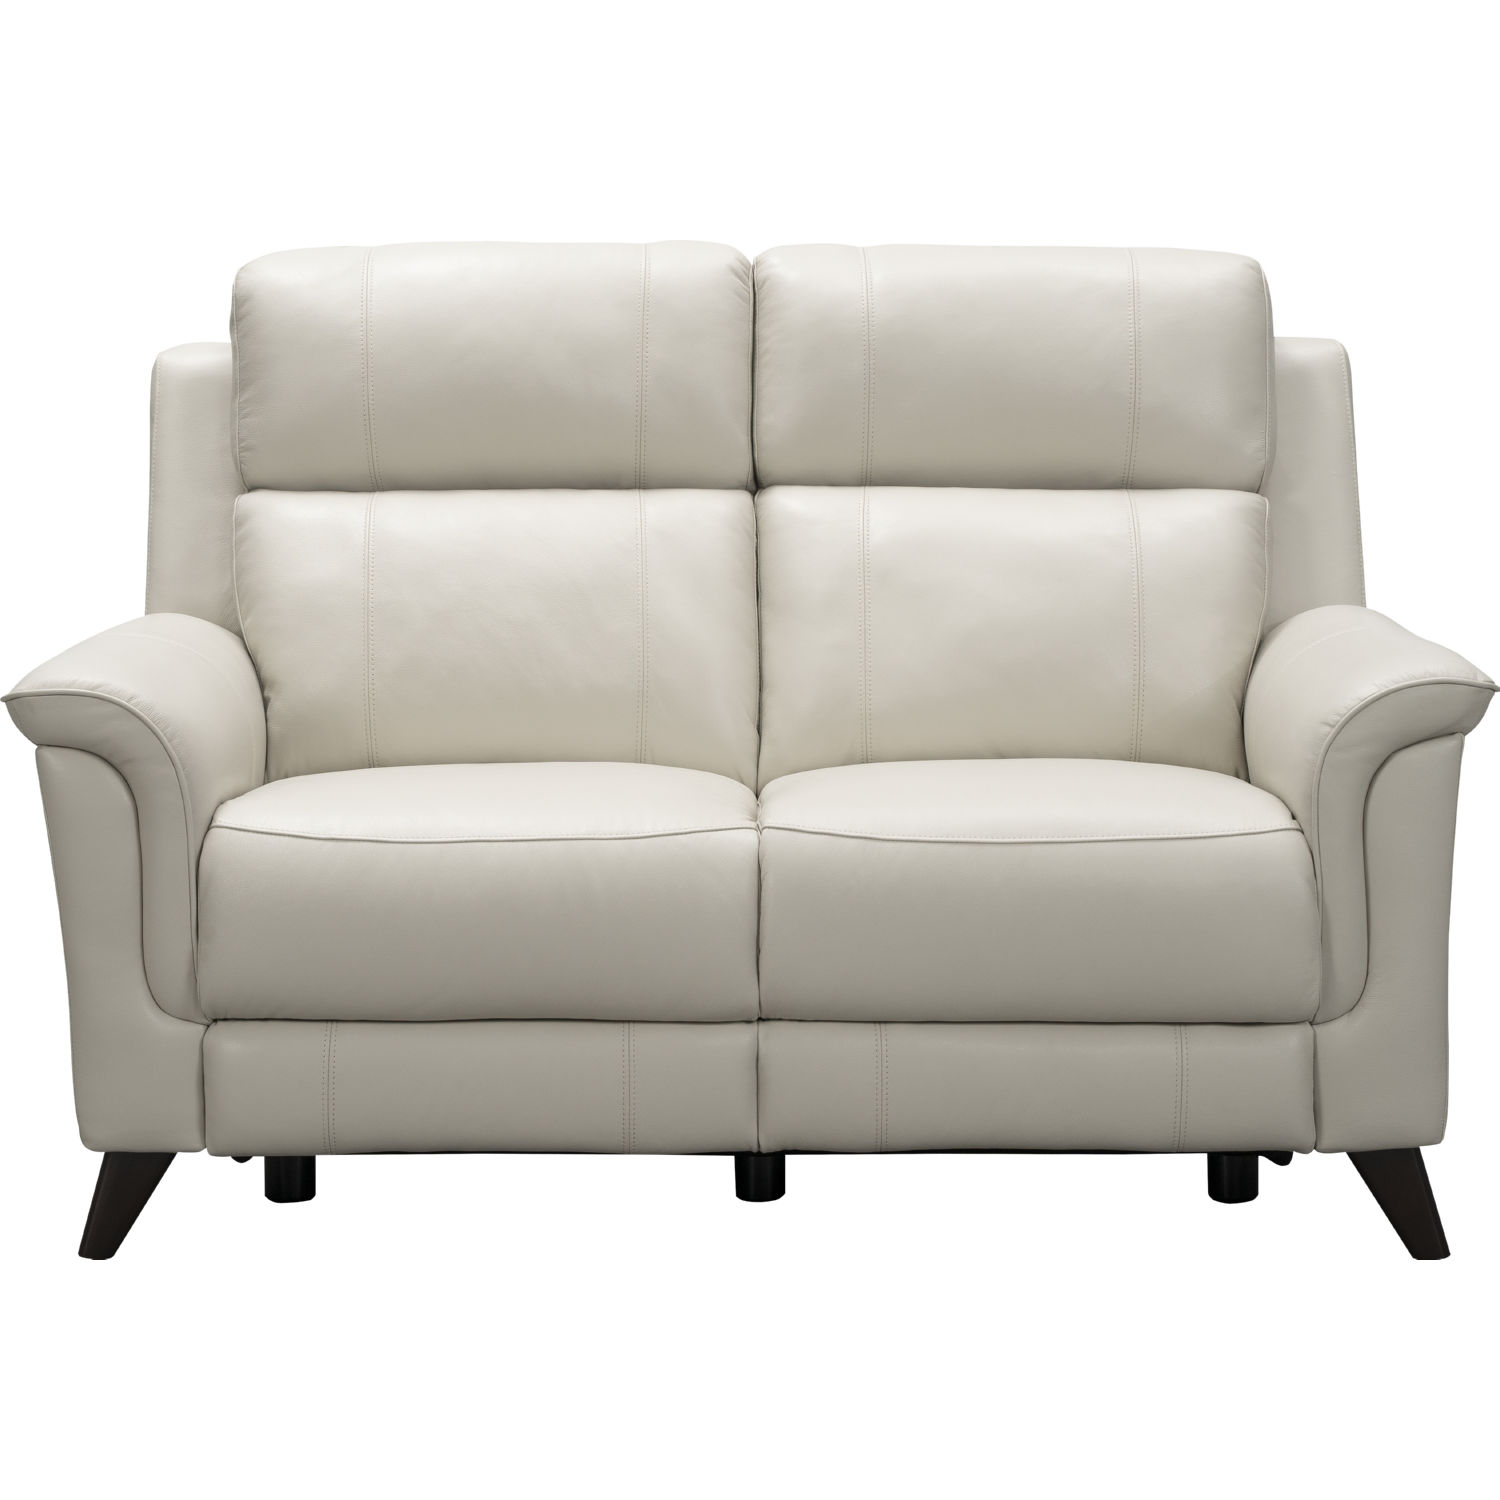 Picture of: Barcalounger 29ph 3716 3726 82 Kester Power Reclining Loveseat In Laurel Cream Leather